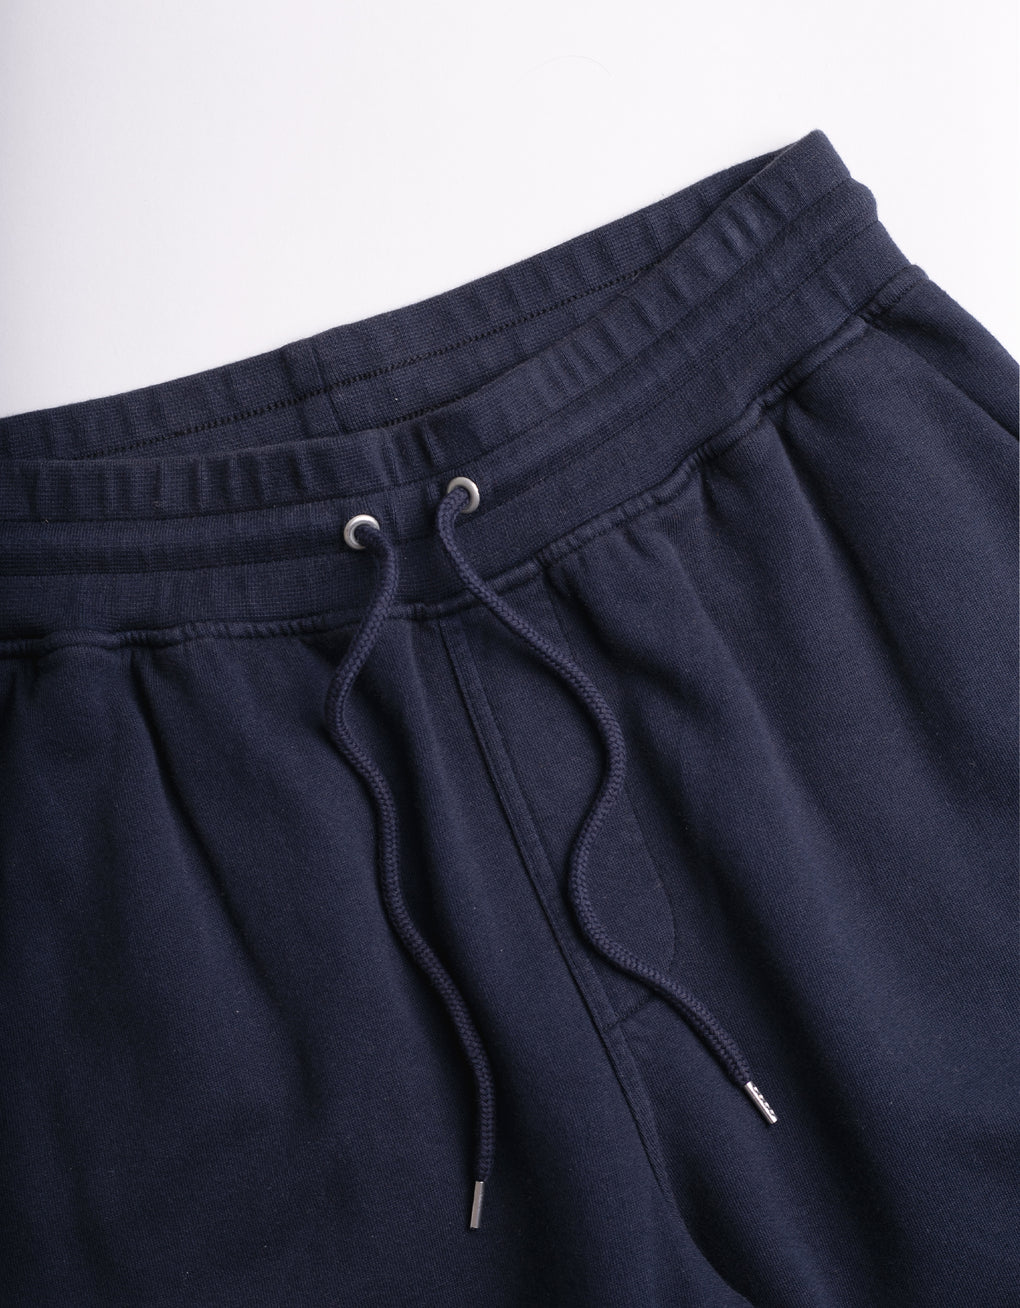 Colorful Standard Classic Organic Sweatshorts Shorts Navy Blue